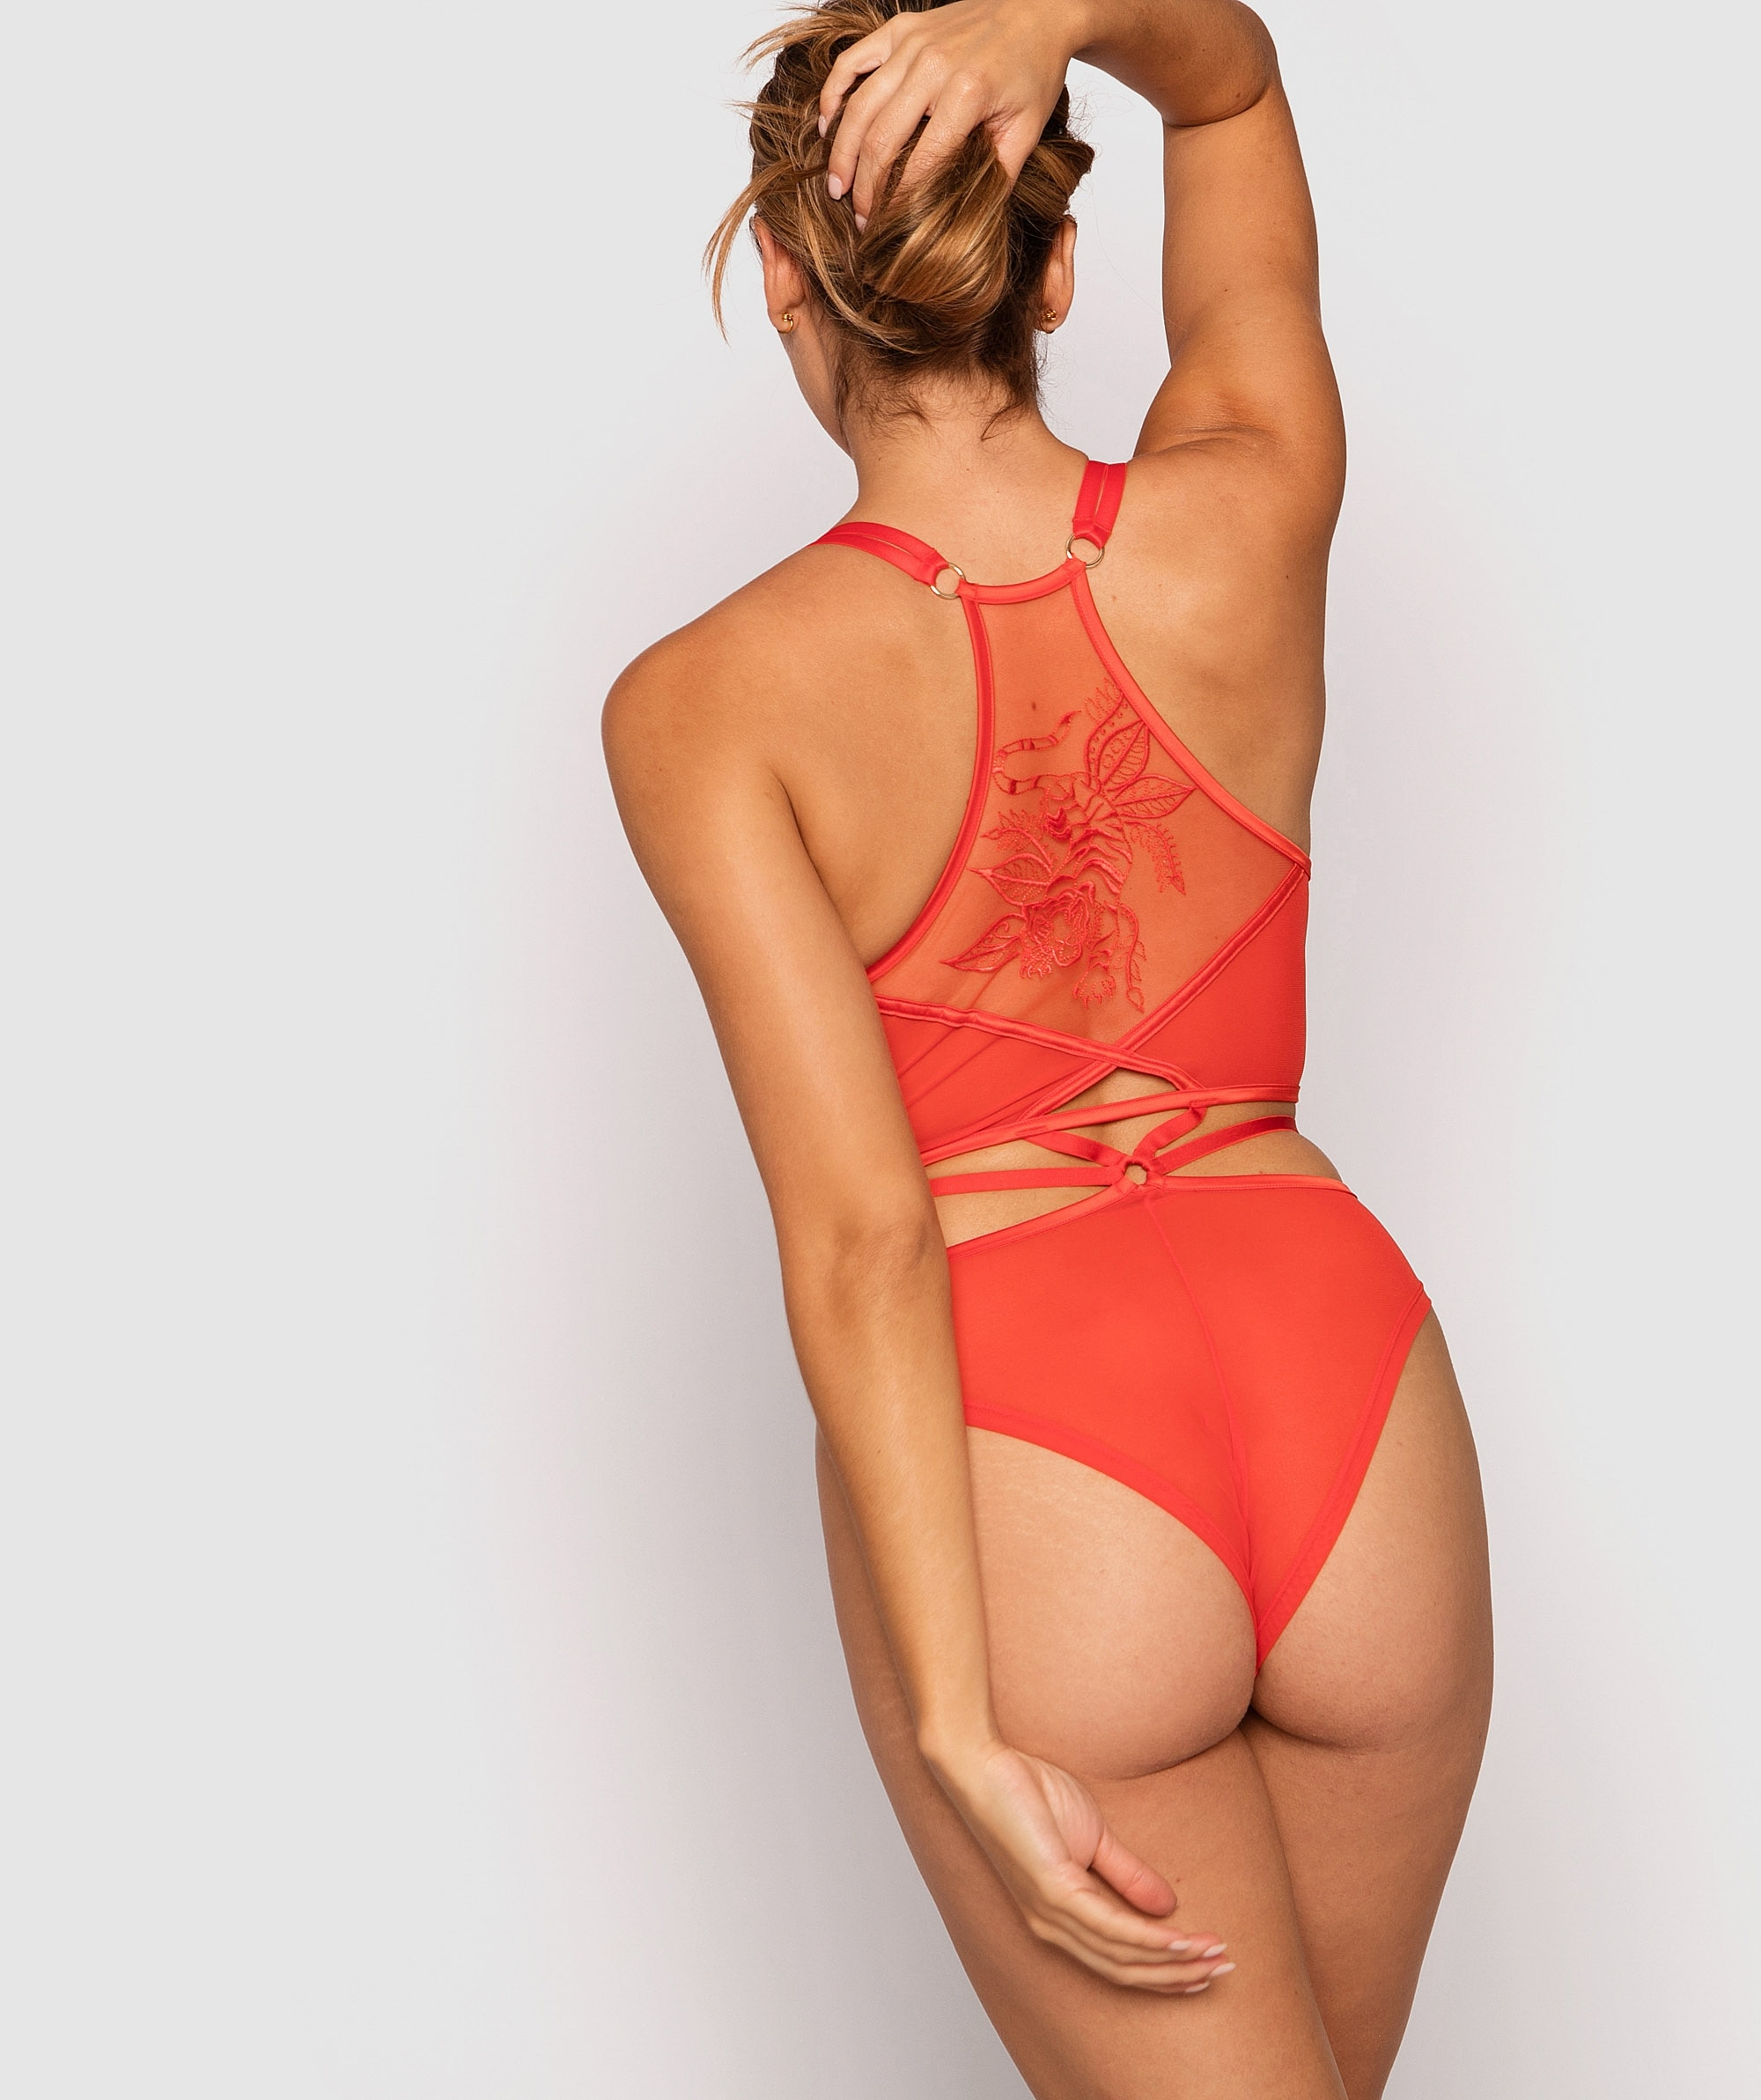 Vamp Wild Thoughts Bodysuit - Red/Nude